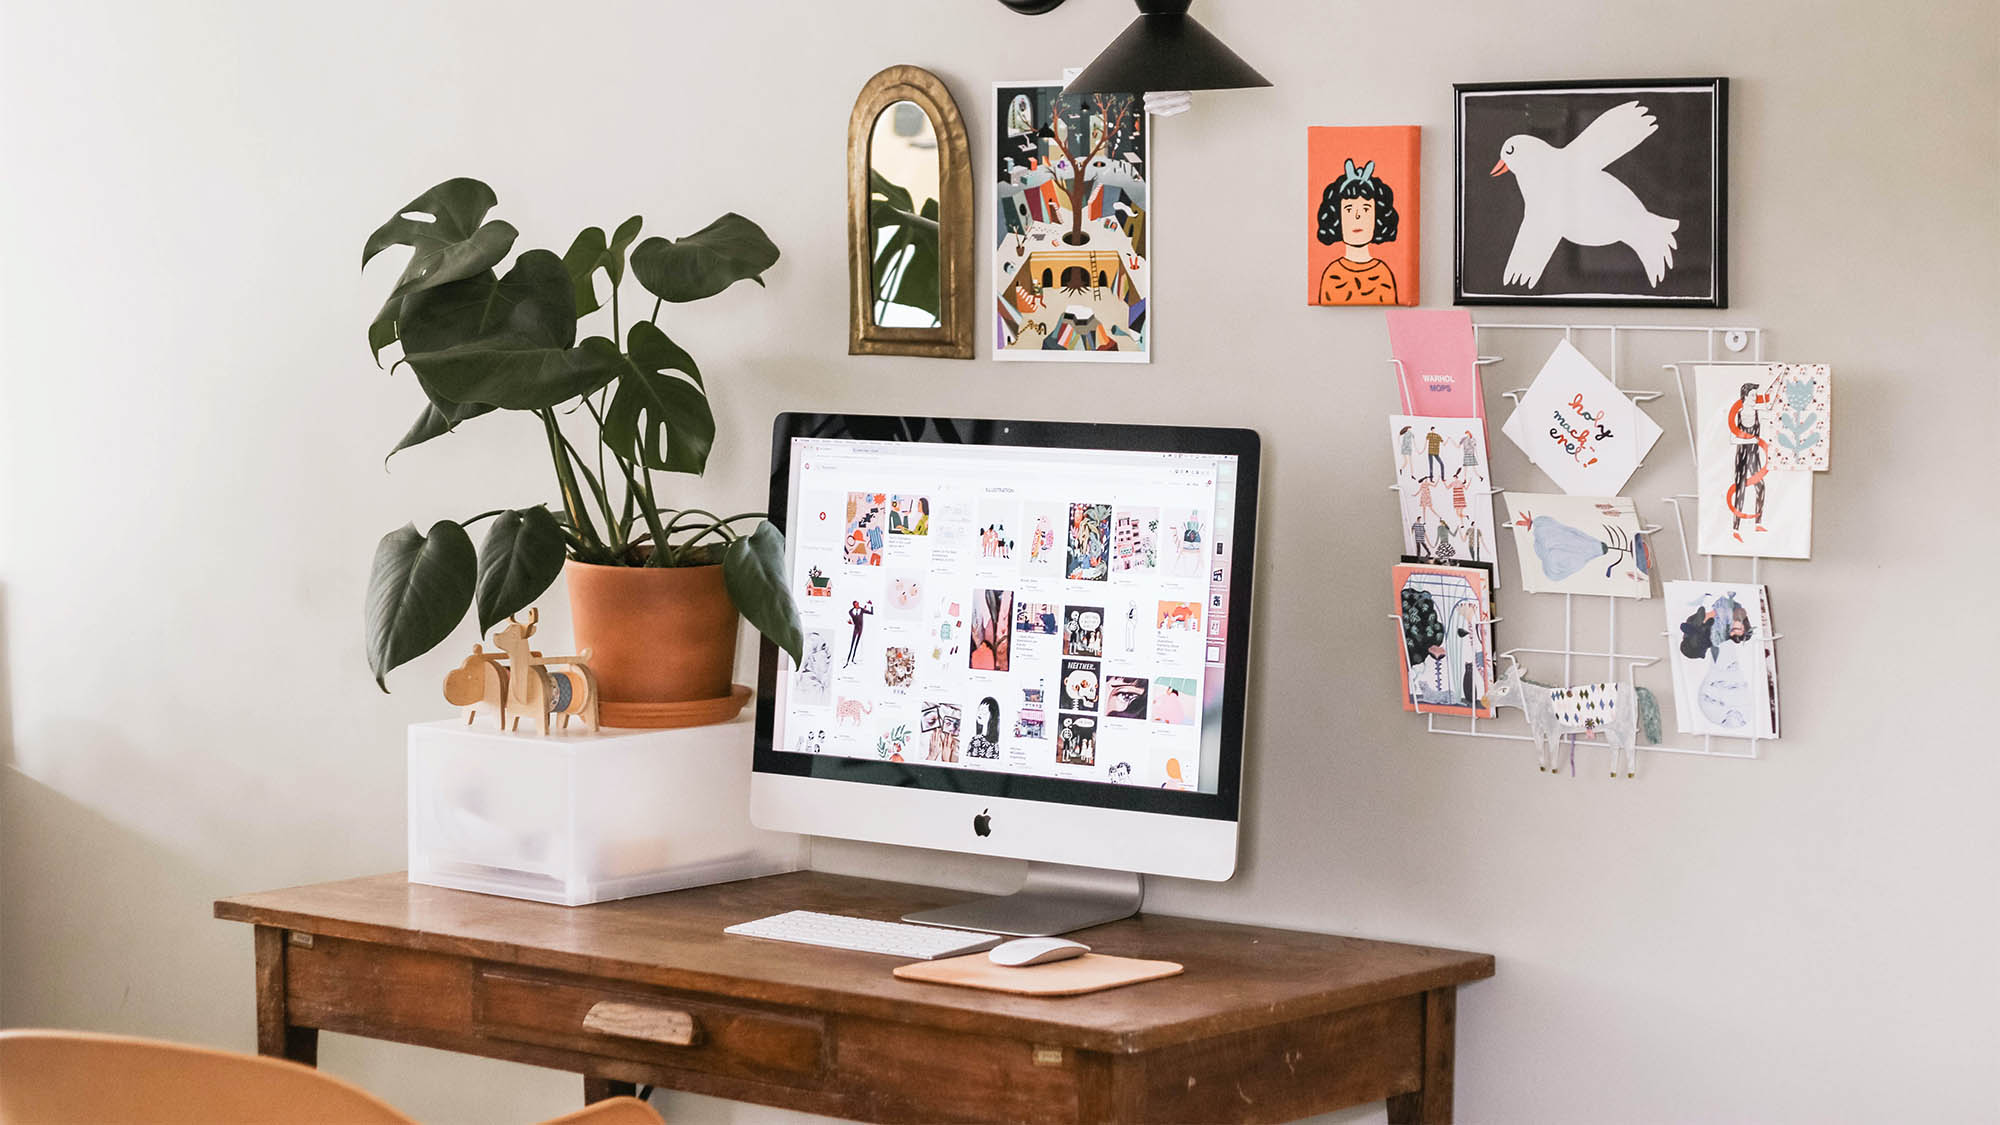 Wood desk with Mac monitor, houseplant and colorful wall art in background